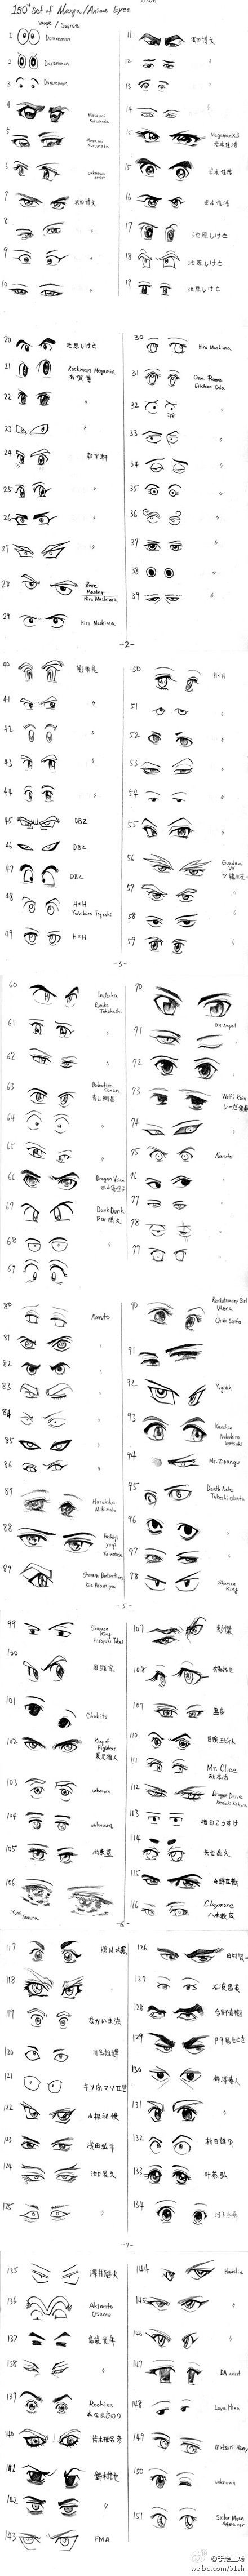 Stylized eye reference for character creation各种眼睛, How to Draw Manga People,Resources for Art Students / Art School Portfolio @ CAPI ::: Create Art Portfolio Ideas at milliande.com , How to Draw Manga Figures, Whimsical Human Figure, Sketch, Draw, Manga, Anime